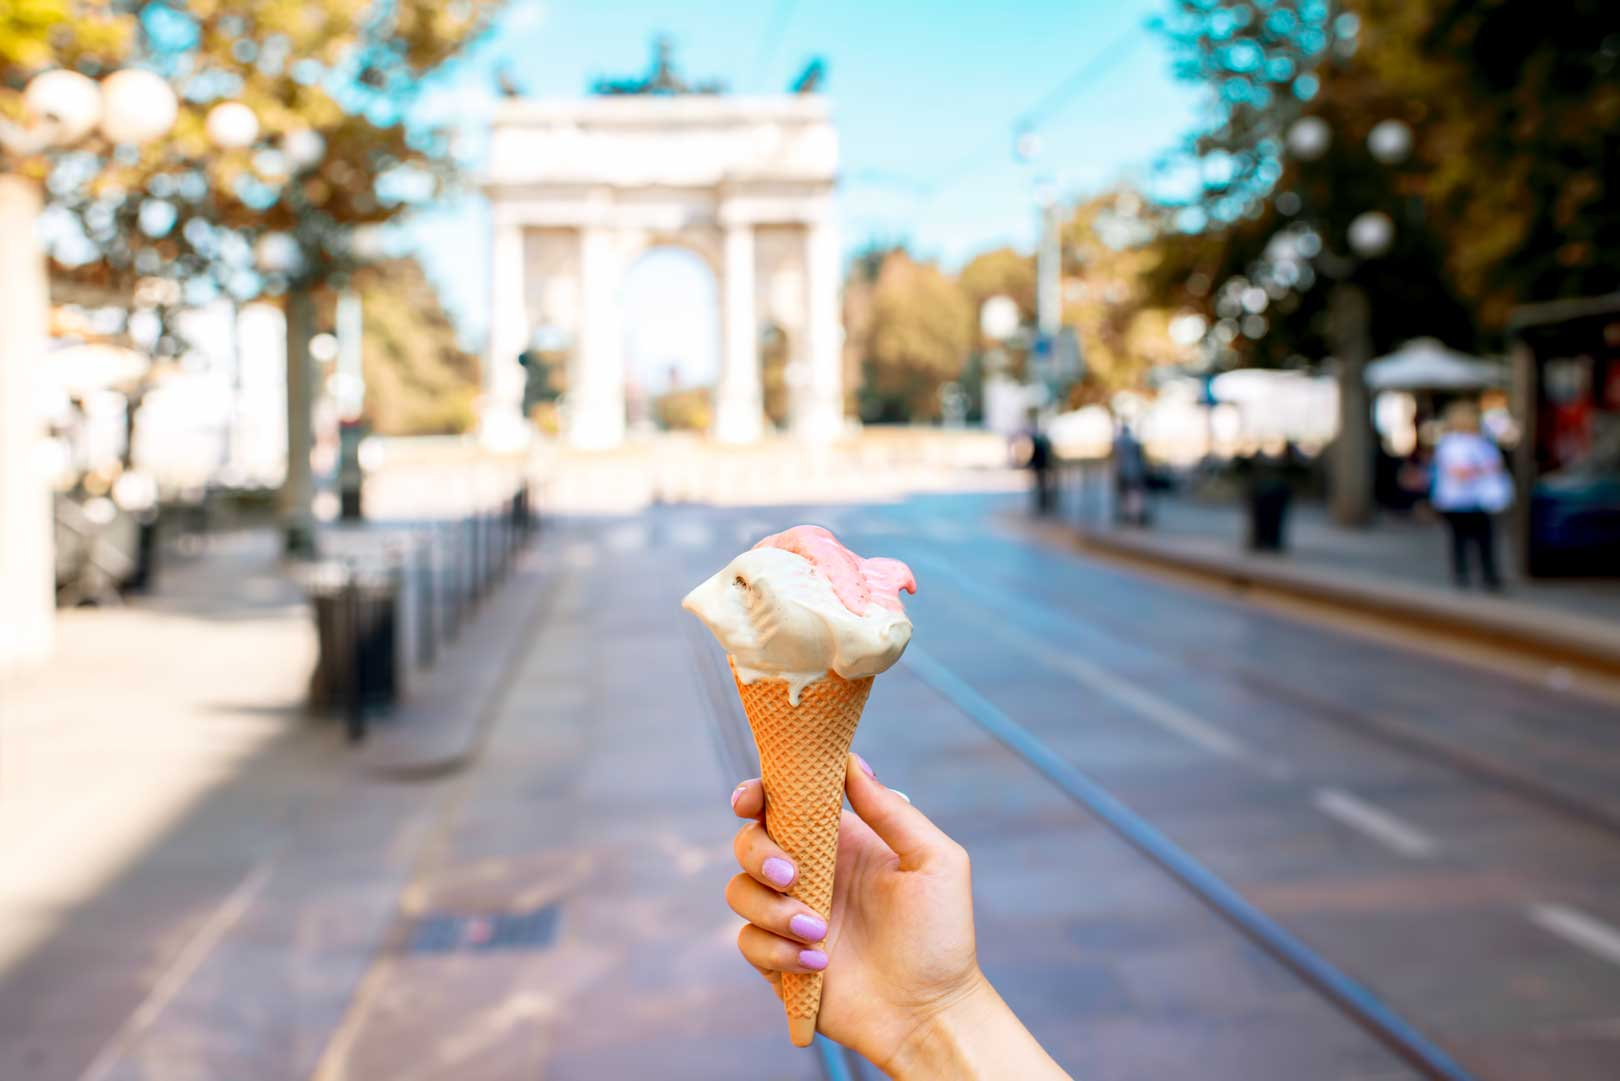 Milan's ice cream parlors open in August